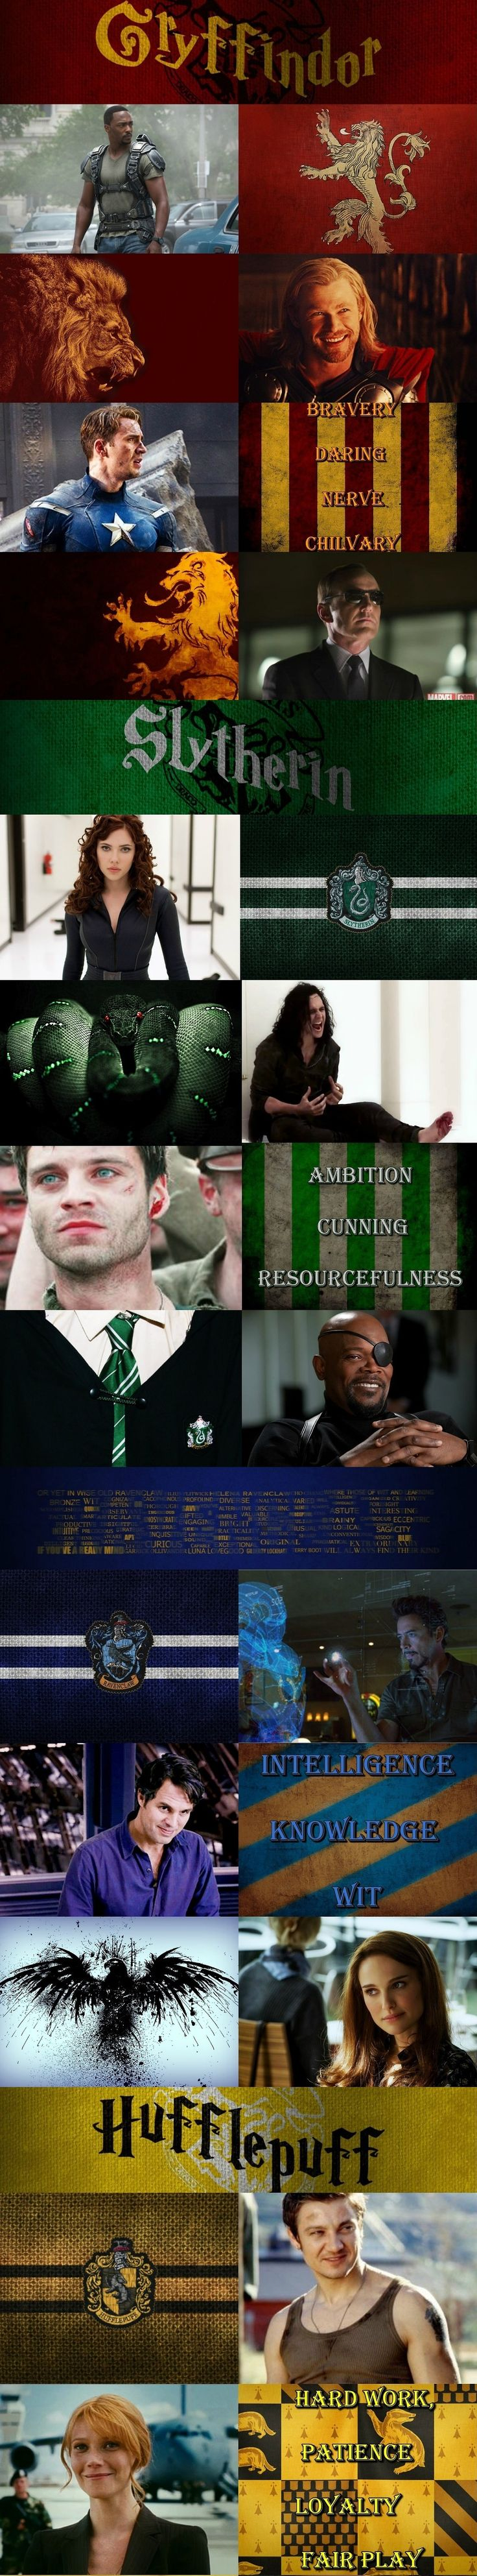 Avengers sorted into their respective Hogwarts houses<<I am proud to be in the Slytherin house alongside Black Widow, Bucky Barnes, Nick Fury, and Loki